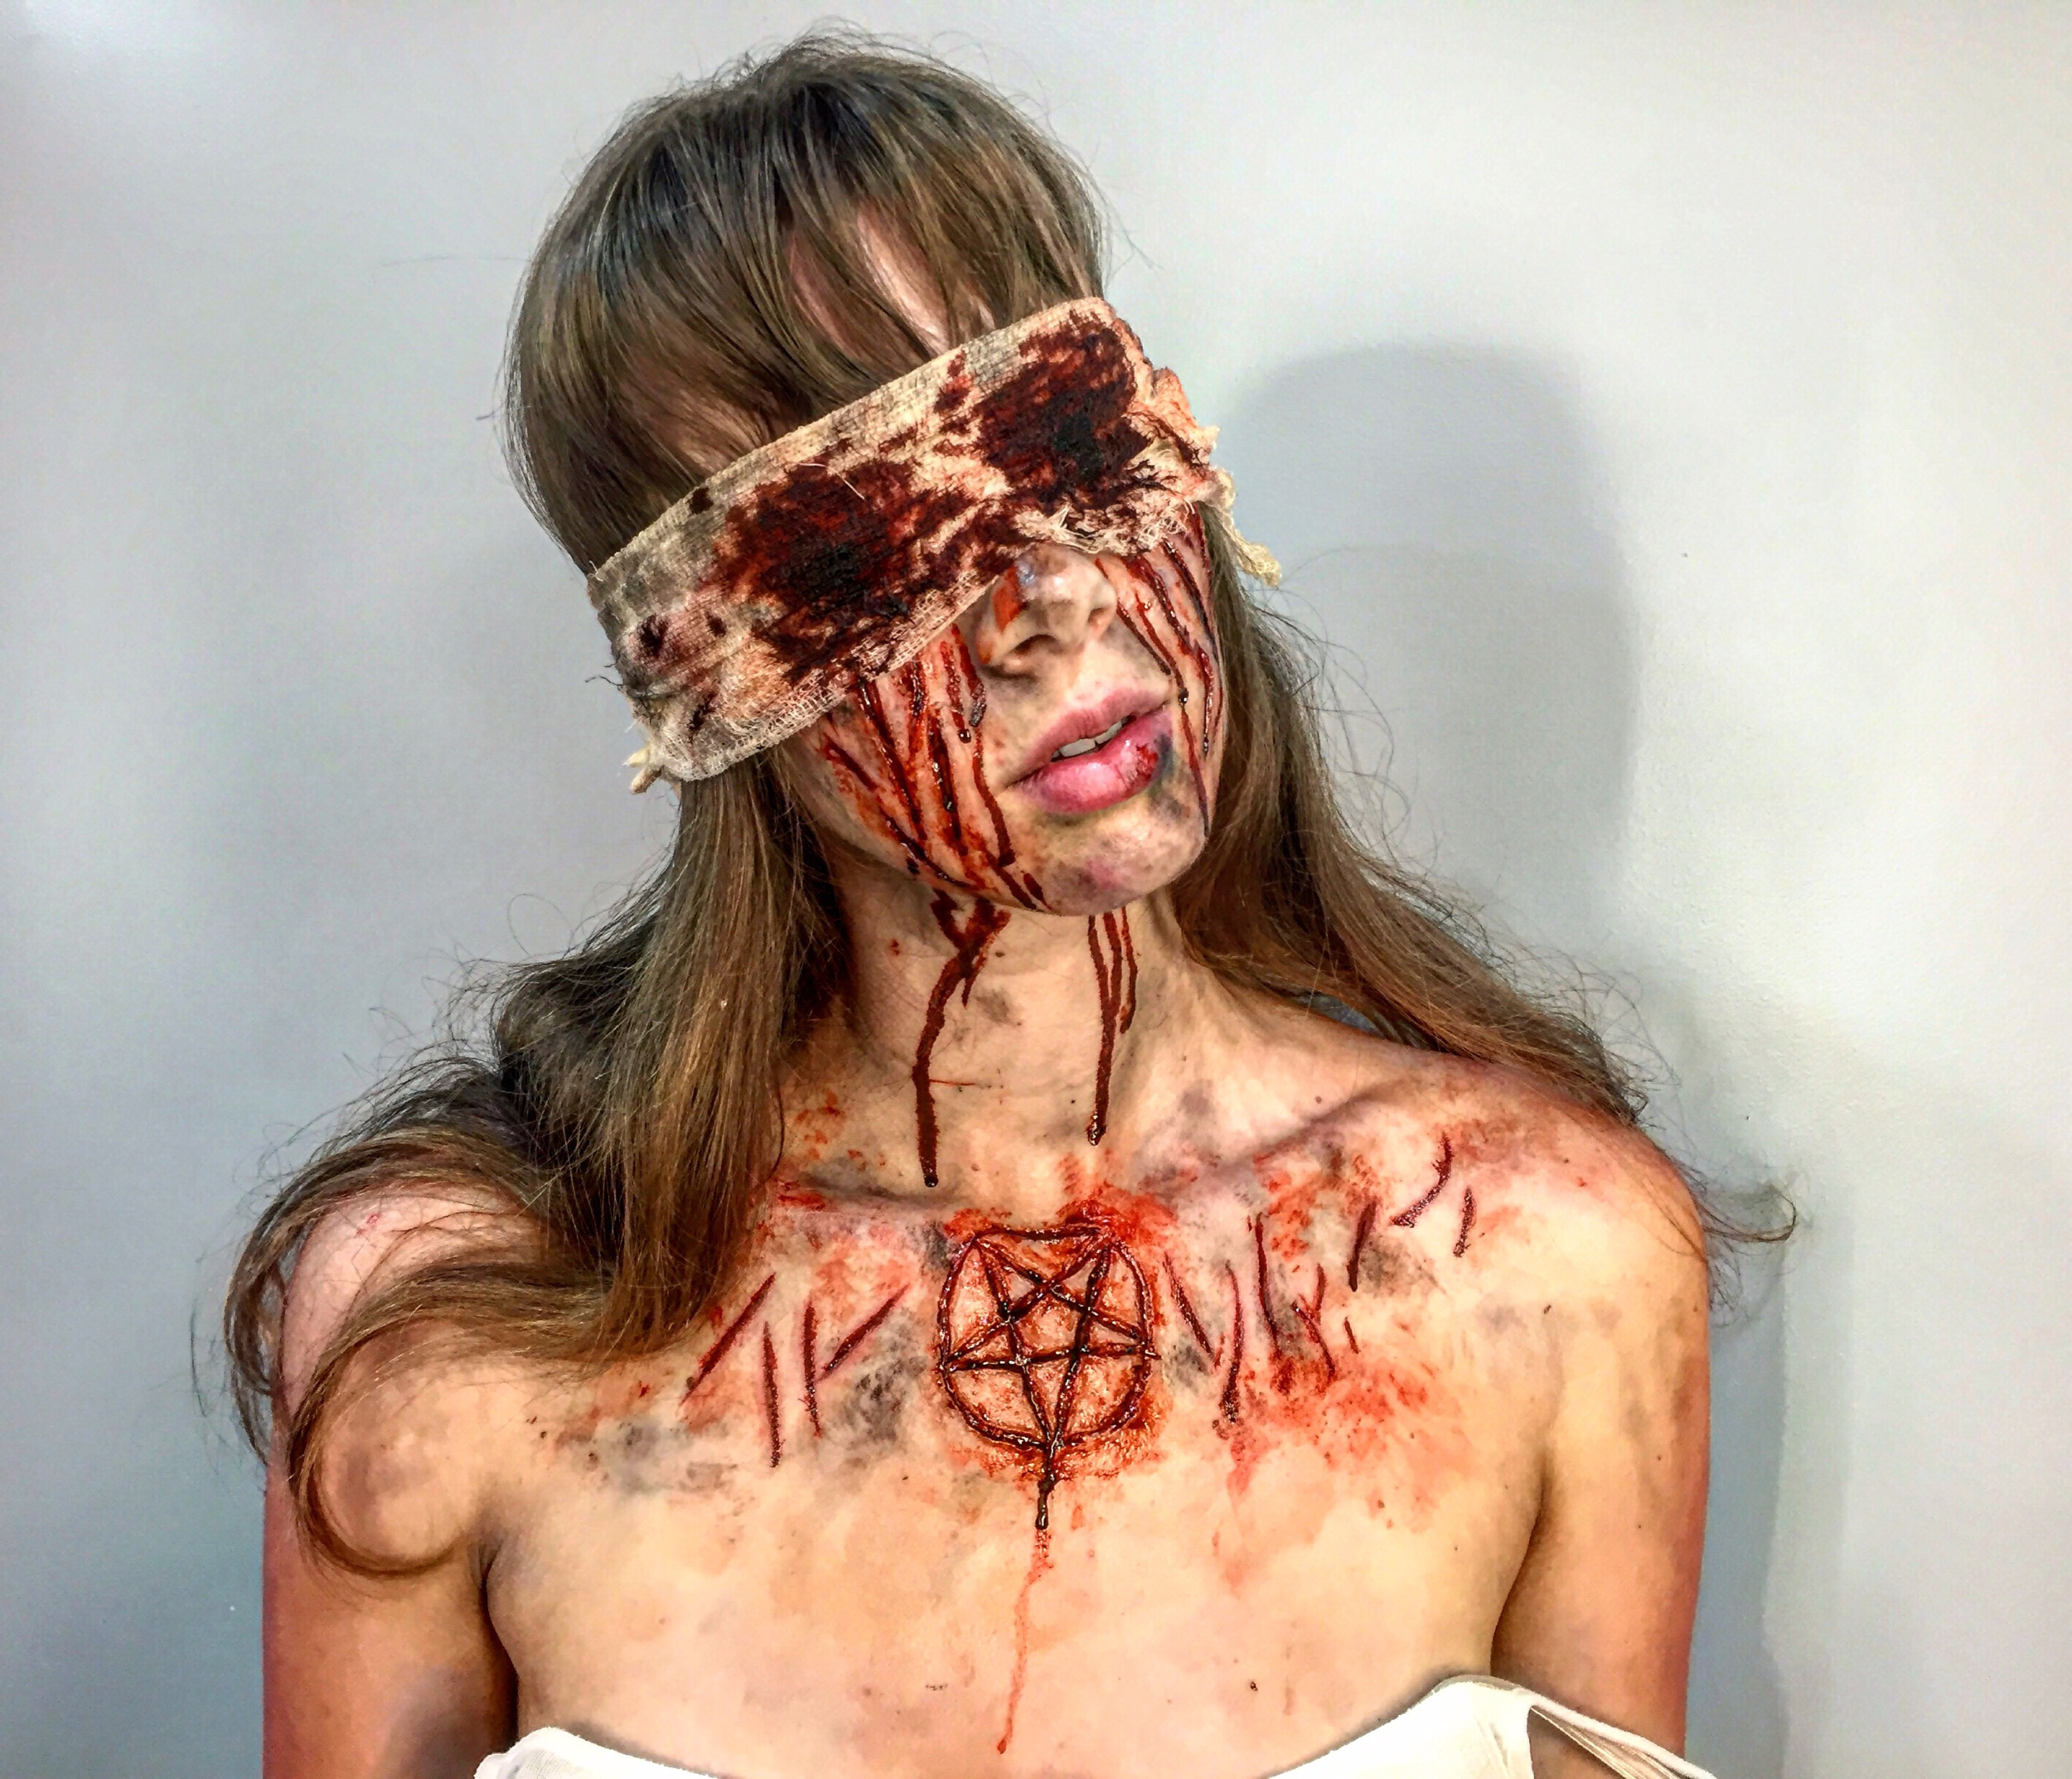 Application/Makeup by Hannah Reed for Tinsley Transfers Merchandise/Social Media.  Sculpt by Tinsley Transfers.